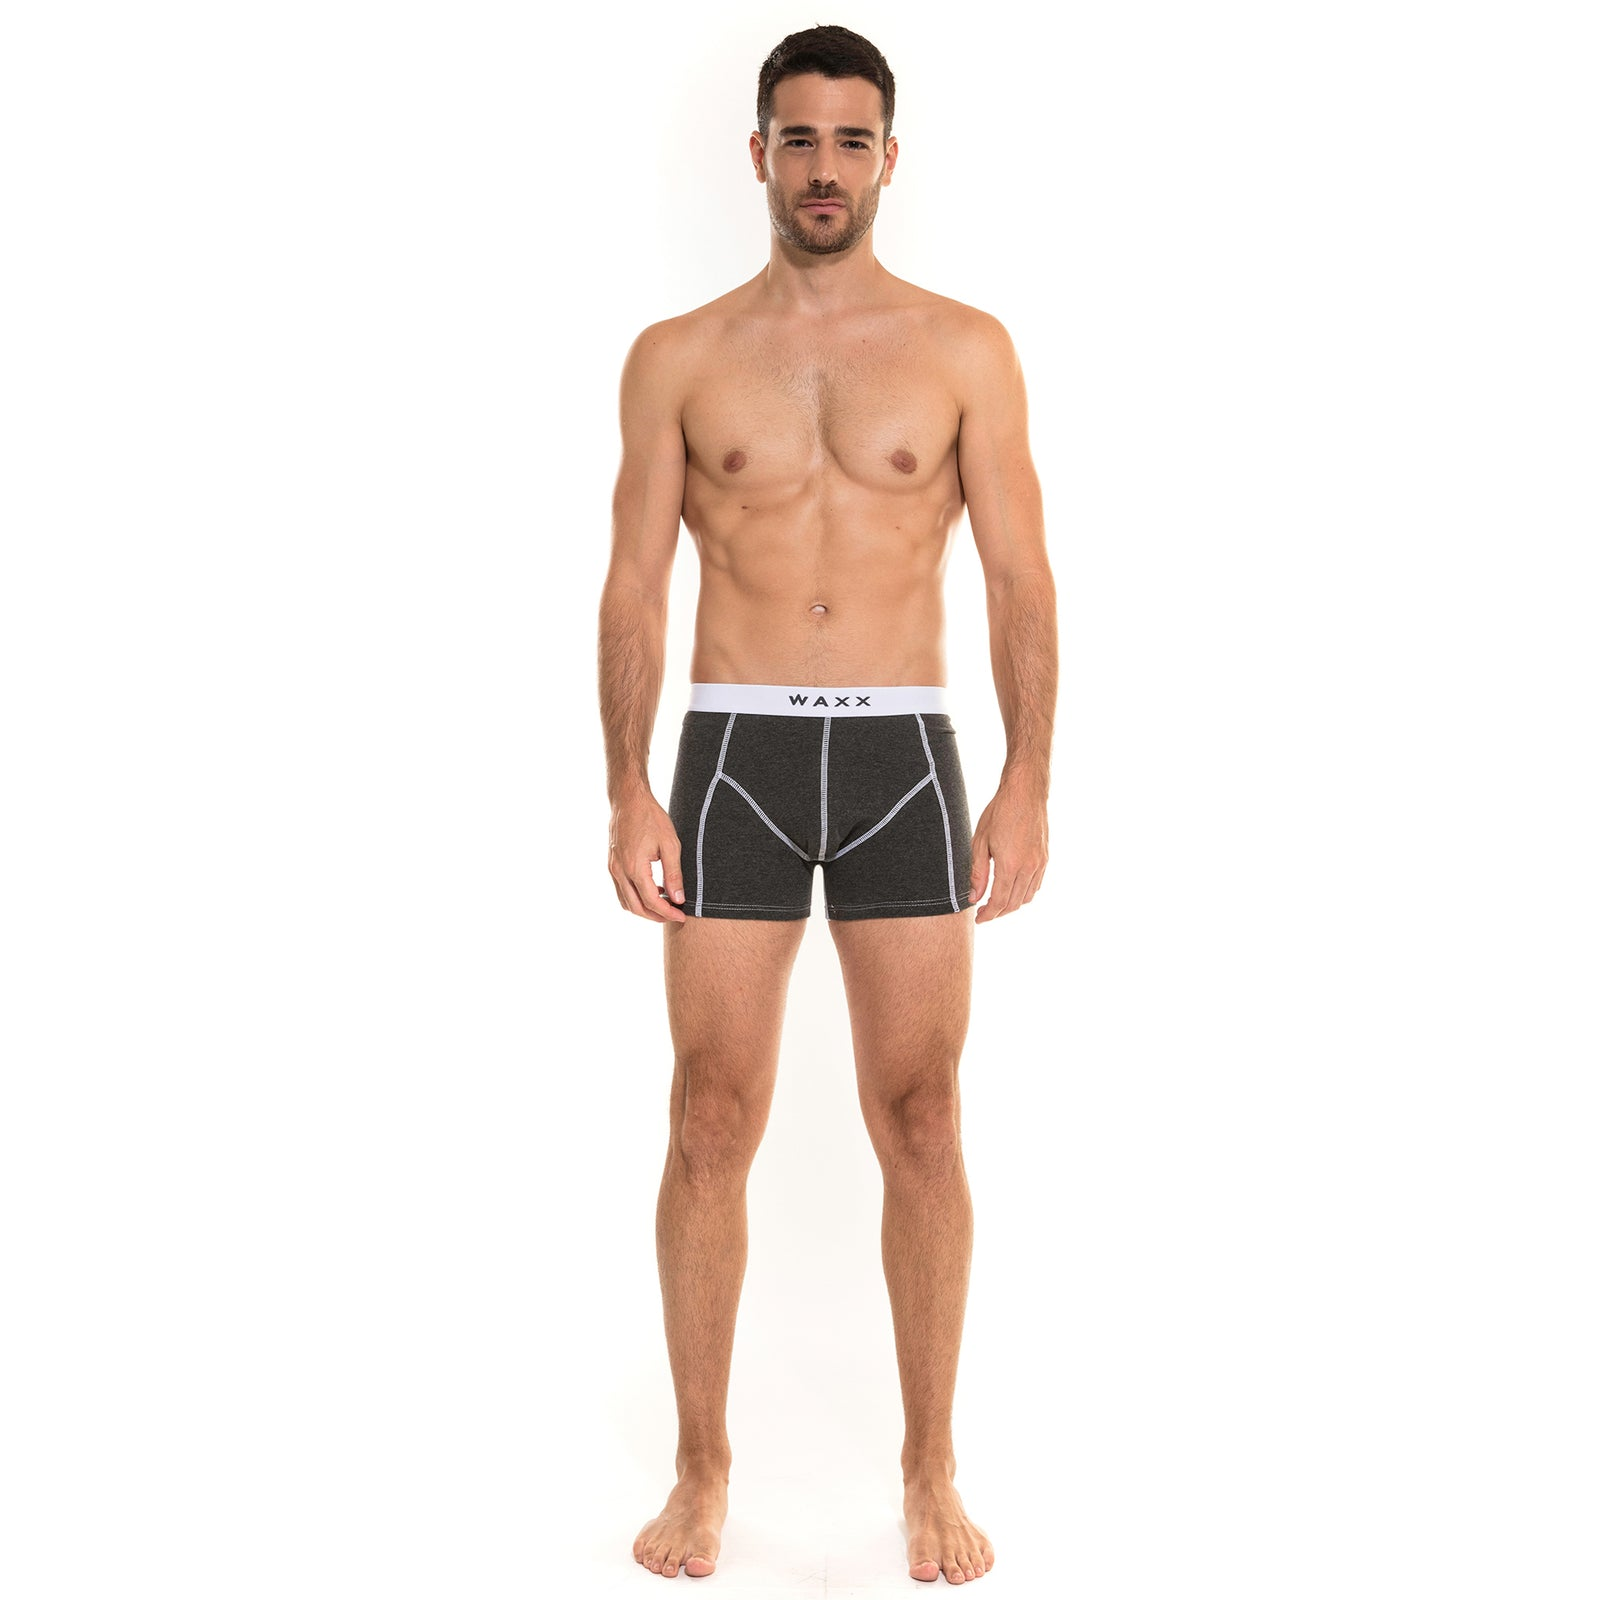 Waxx Men's Cotton Trunk Boxer Bundle